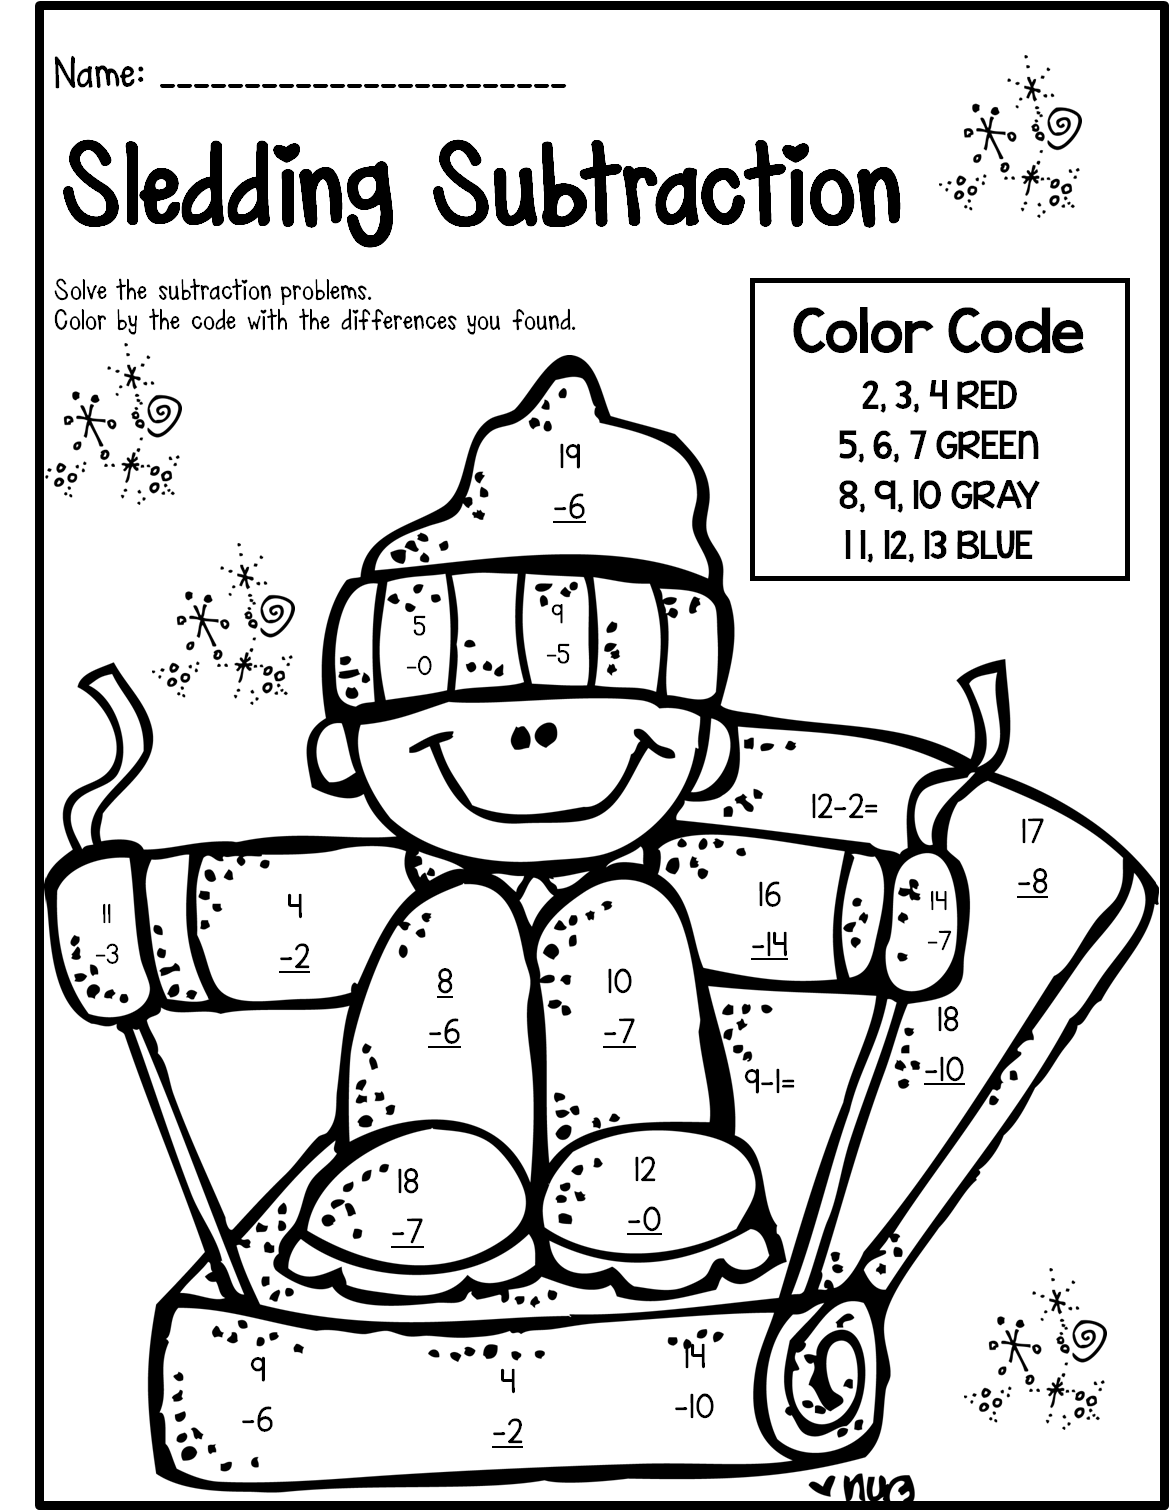 Coloring pages for double digit subtraction - Mathematics Pin Second Grade Fu For Holiday Time And Good For Leatnign Math Winter